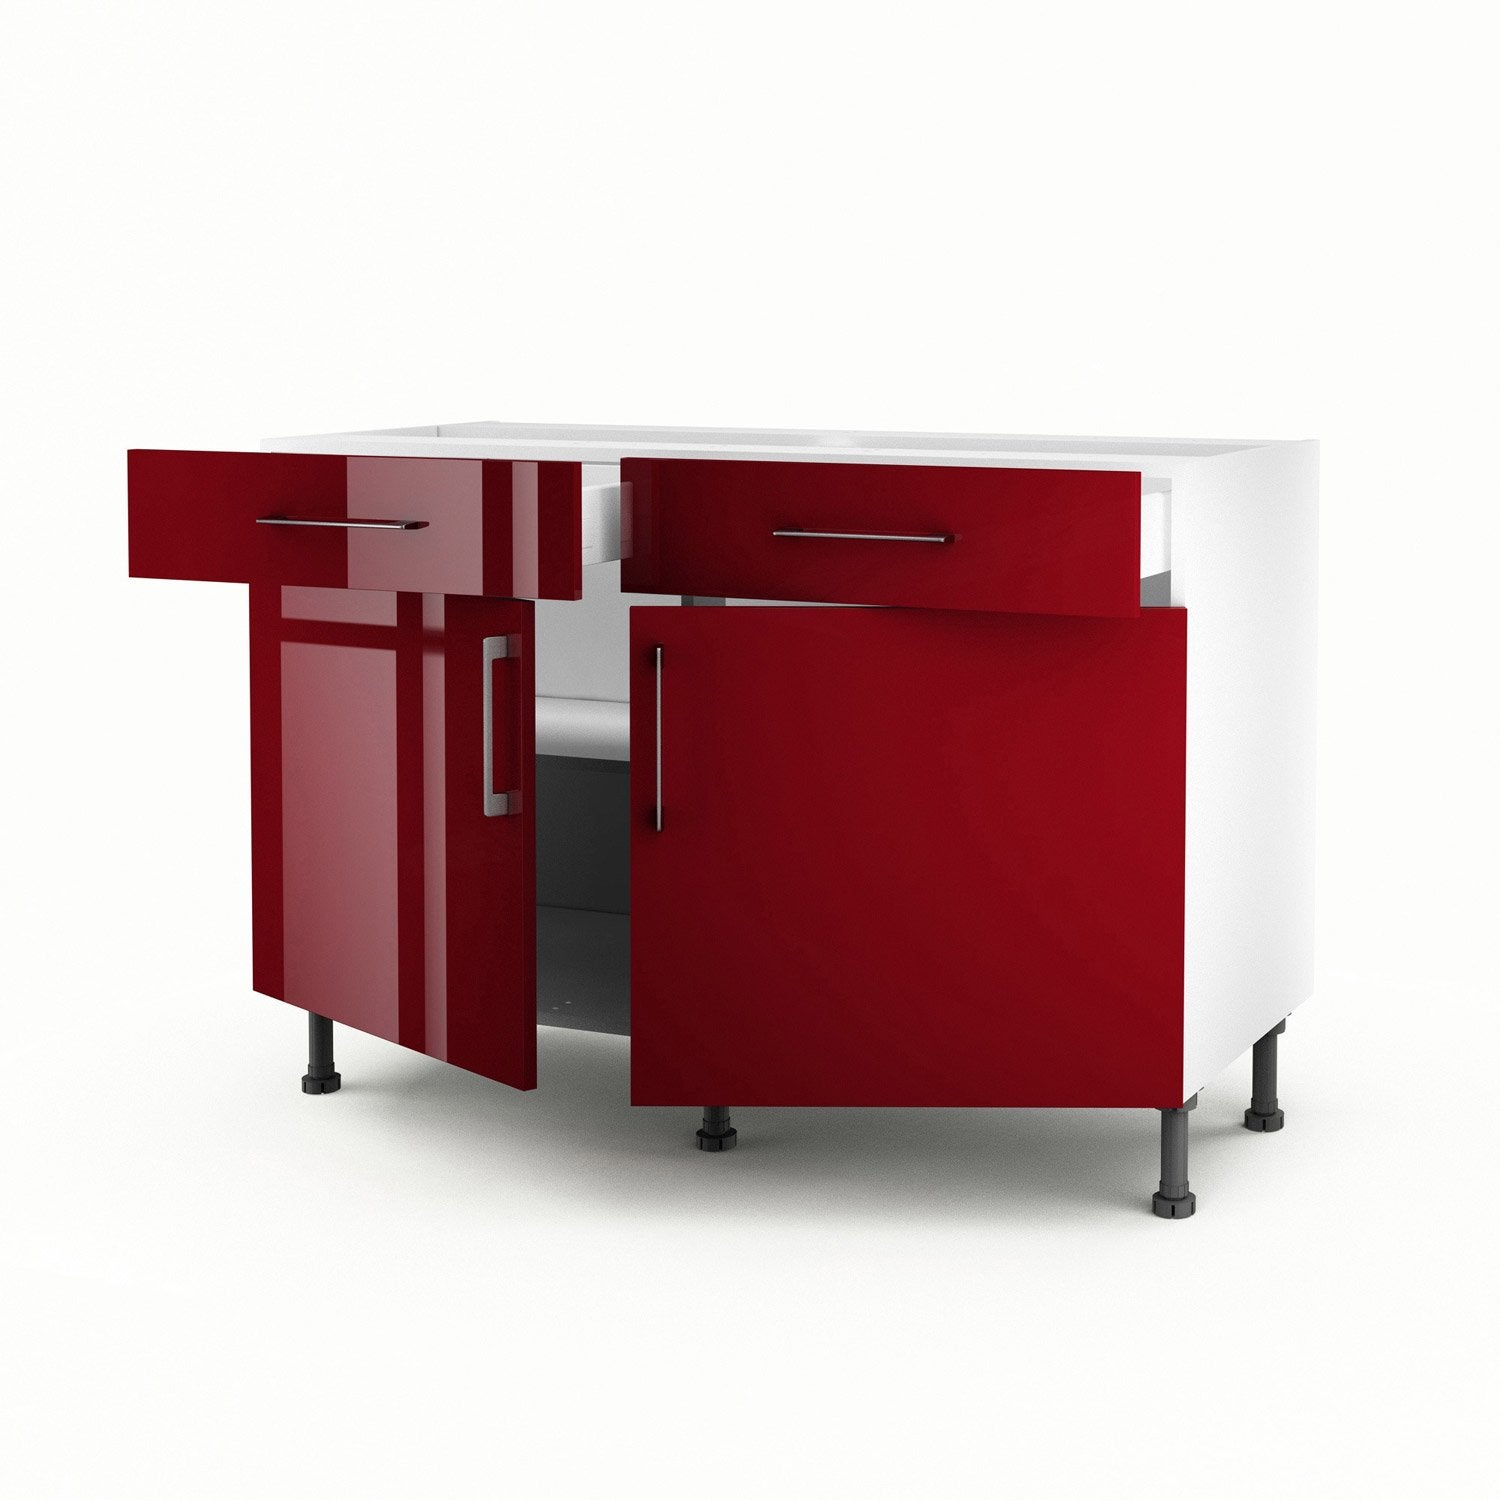 meuble de cuisine bas rouge 2 portes 2 tiroirs griotte h70xl120xp56 cm leroy merlin. Black Bedroom Furniture Sets. Home Design Ideas